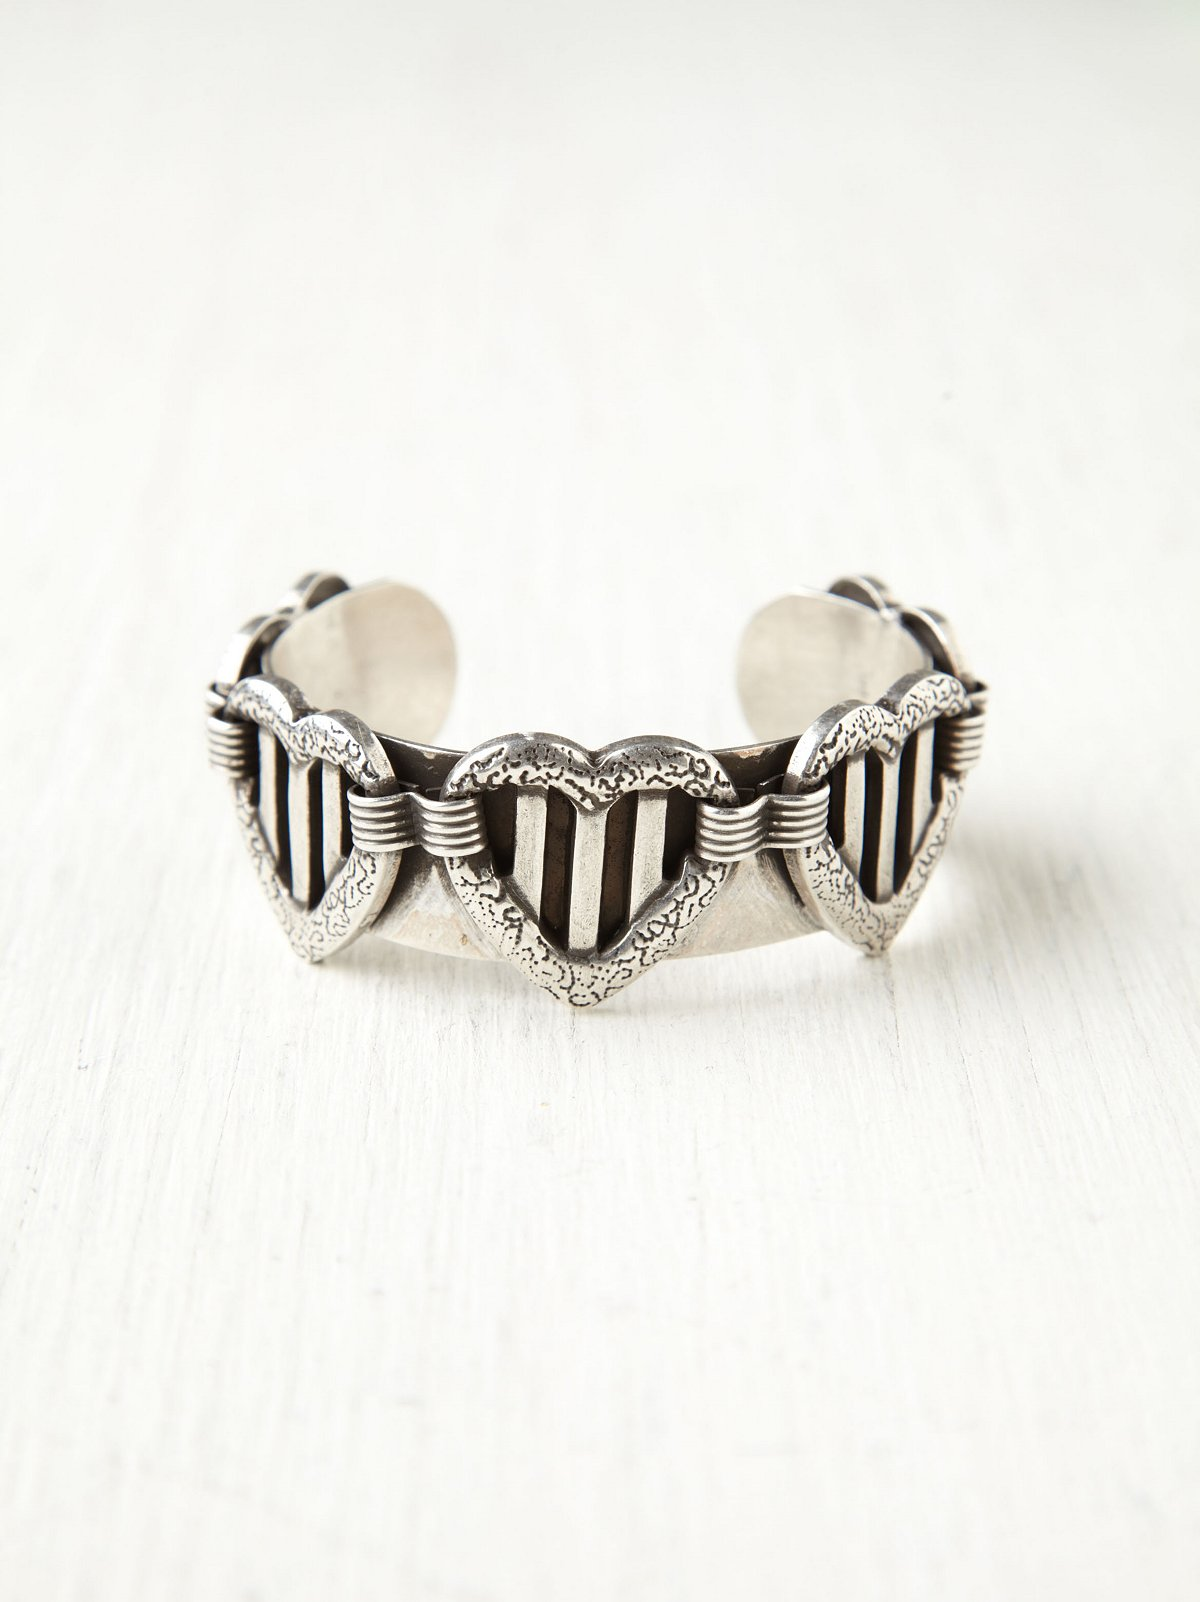 Queen Of Hearts Cuff